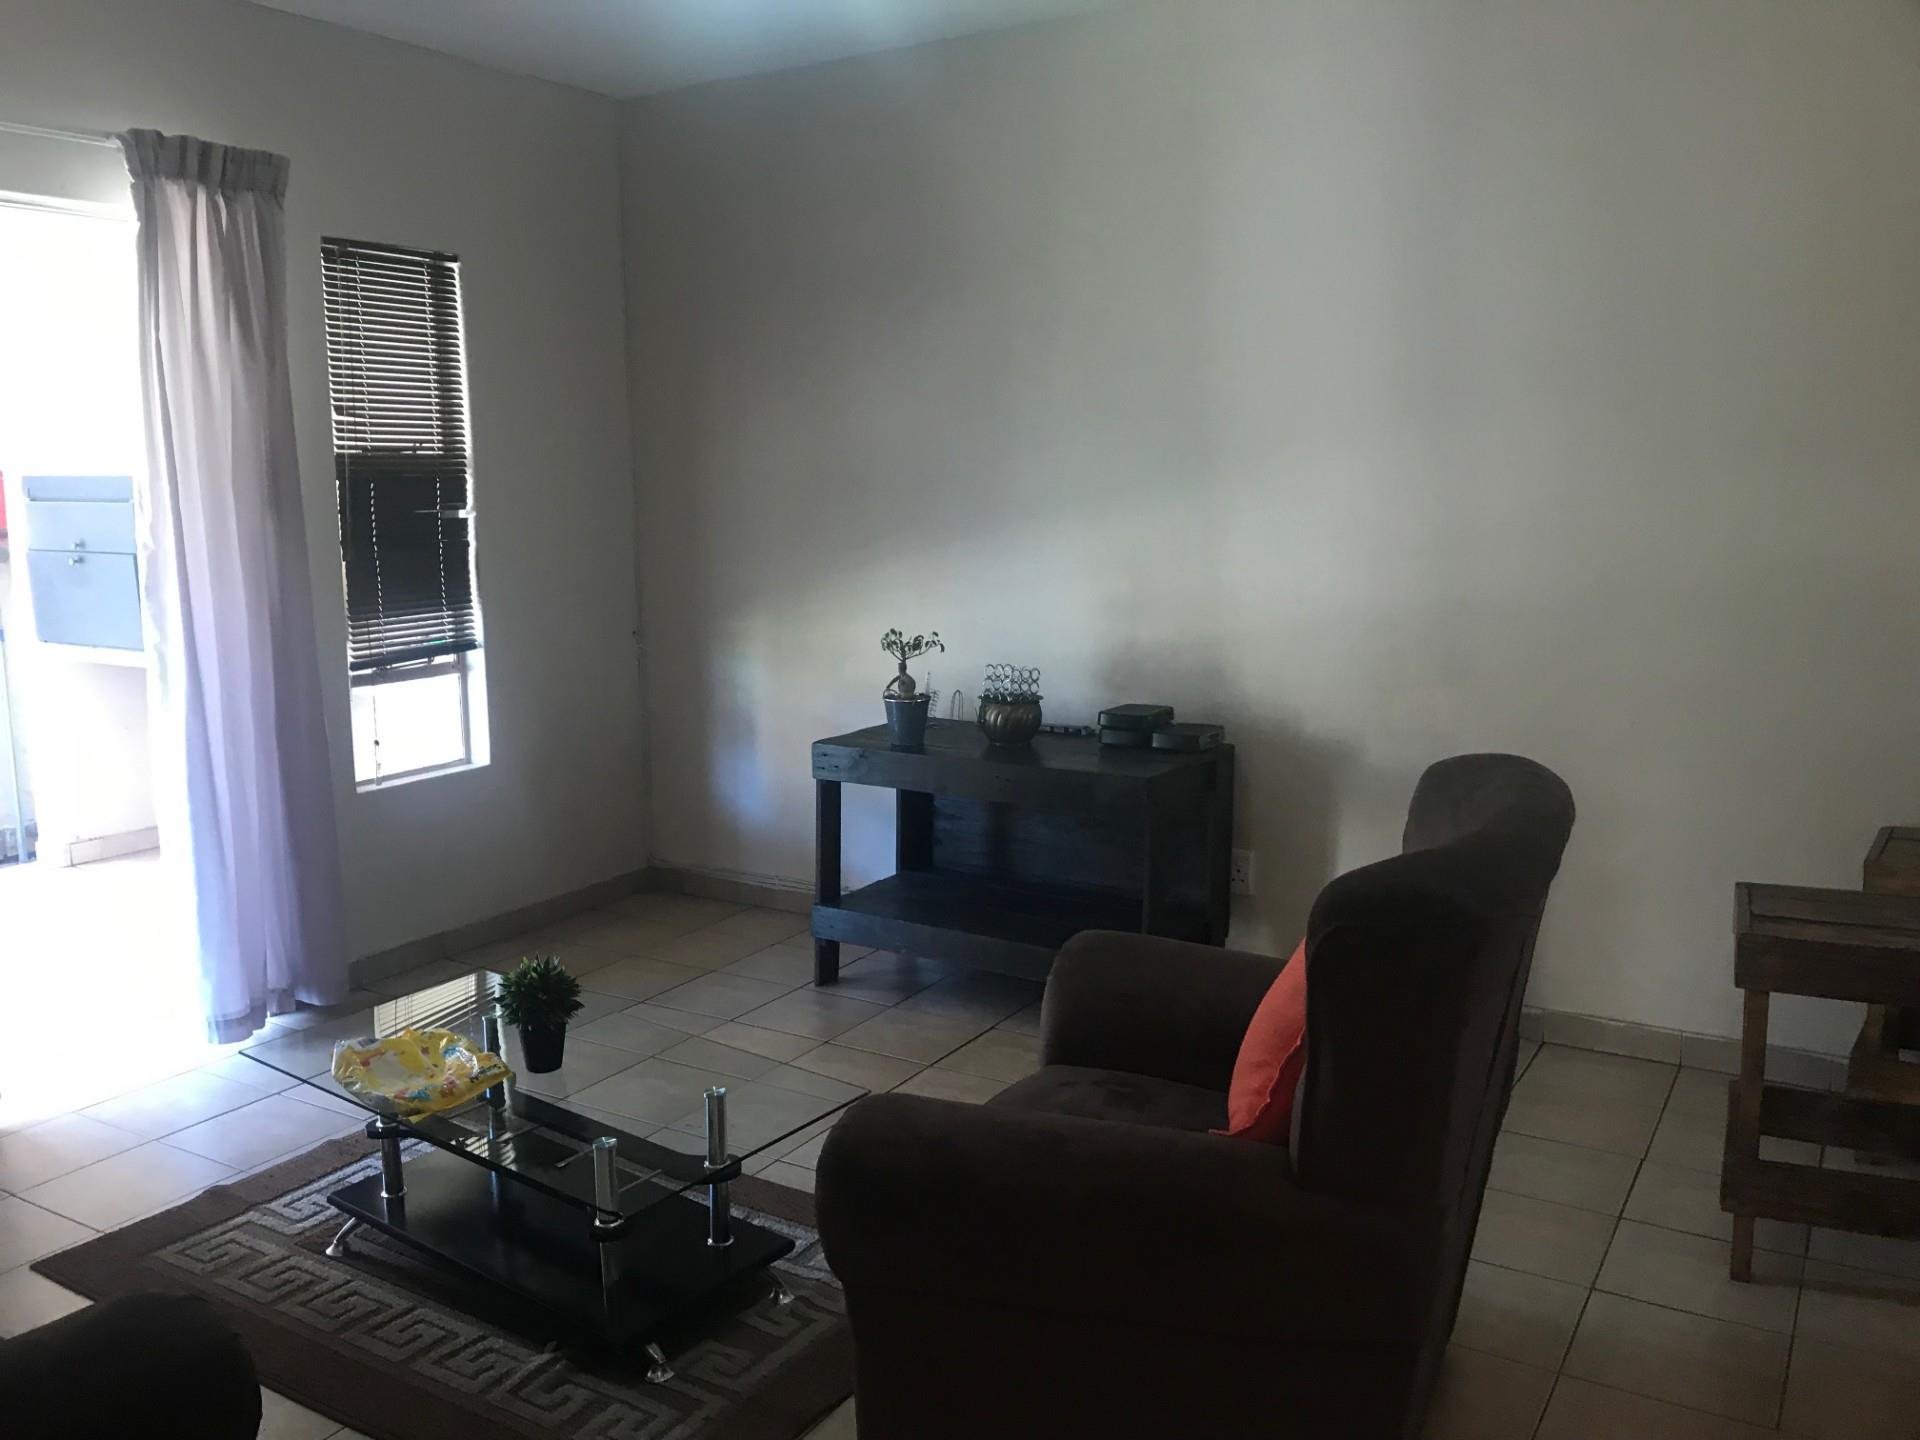 2 Bedroom Apartment / Flat To Rent in Model Park